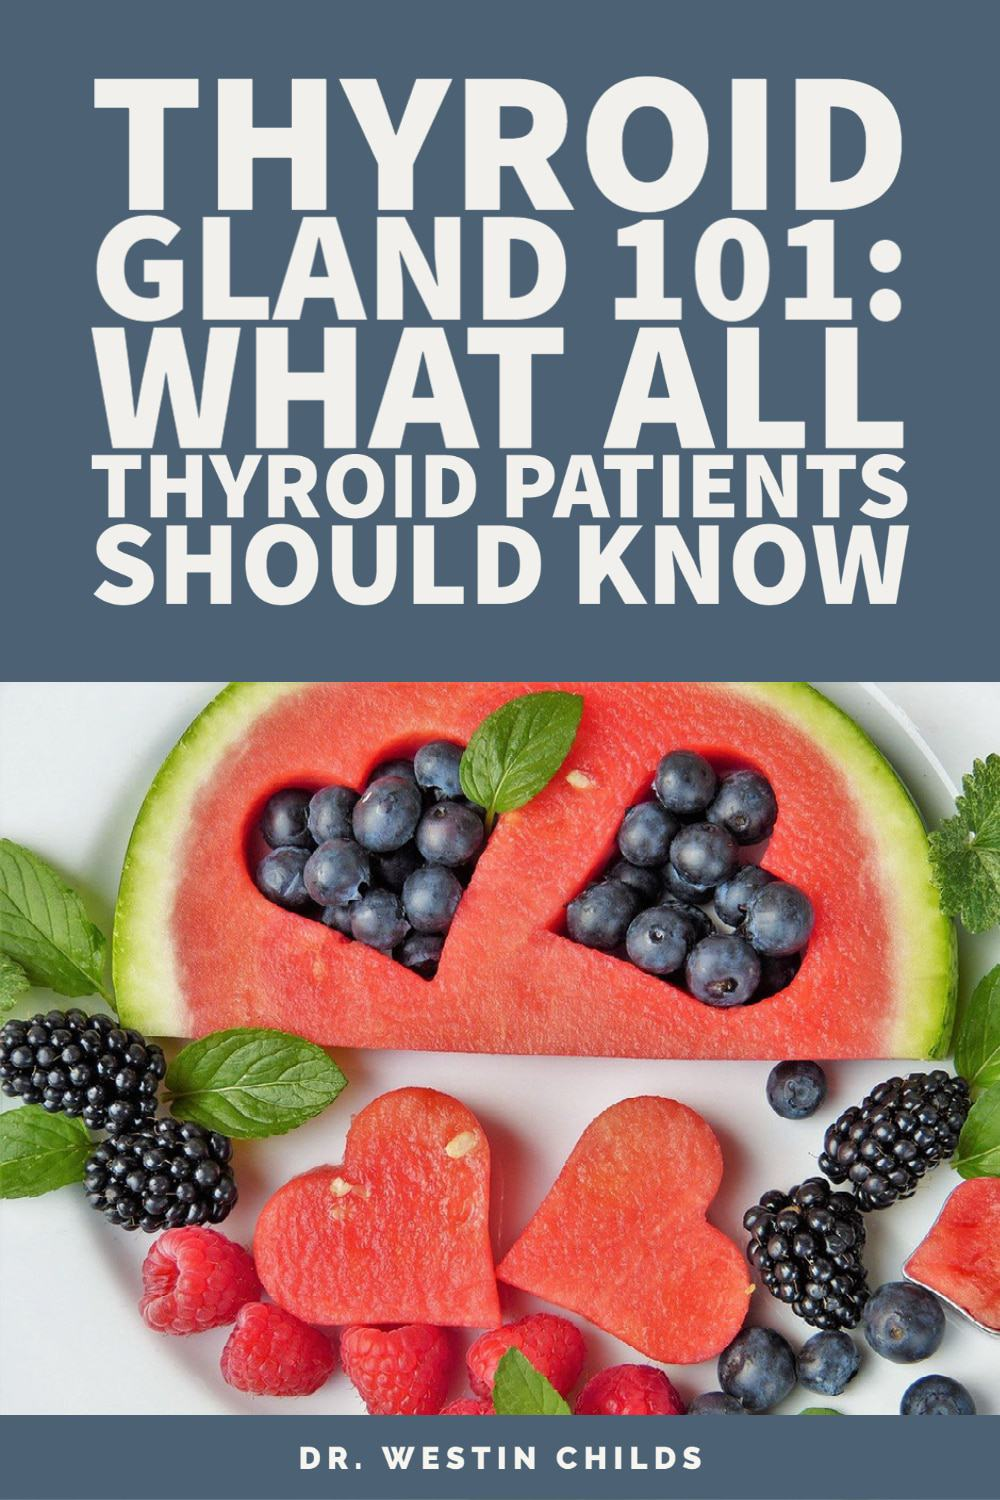 thyroid gland 101 - what all thyroid patients should know